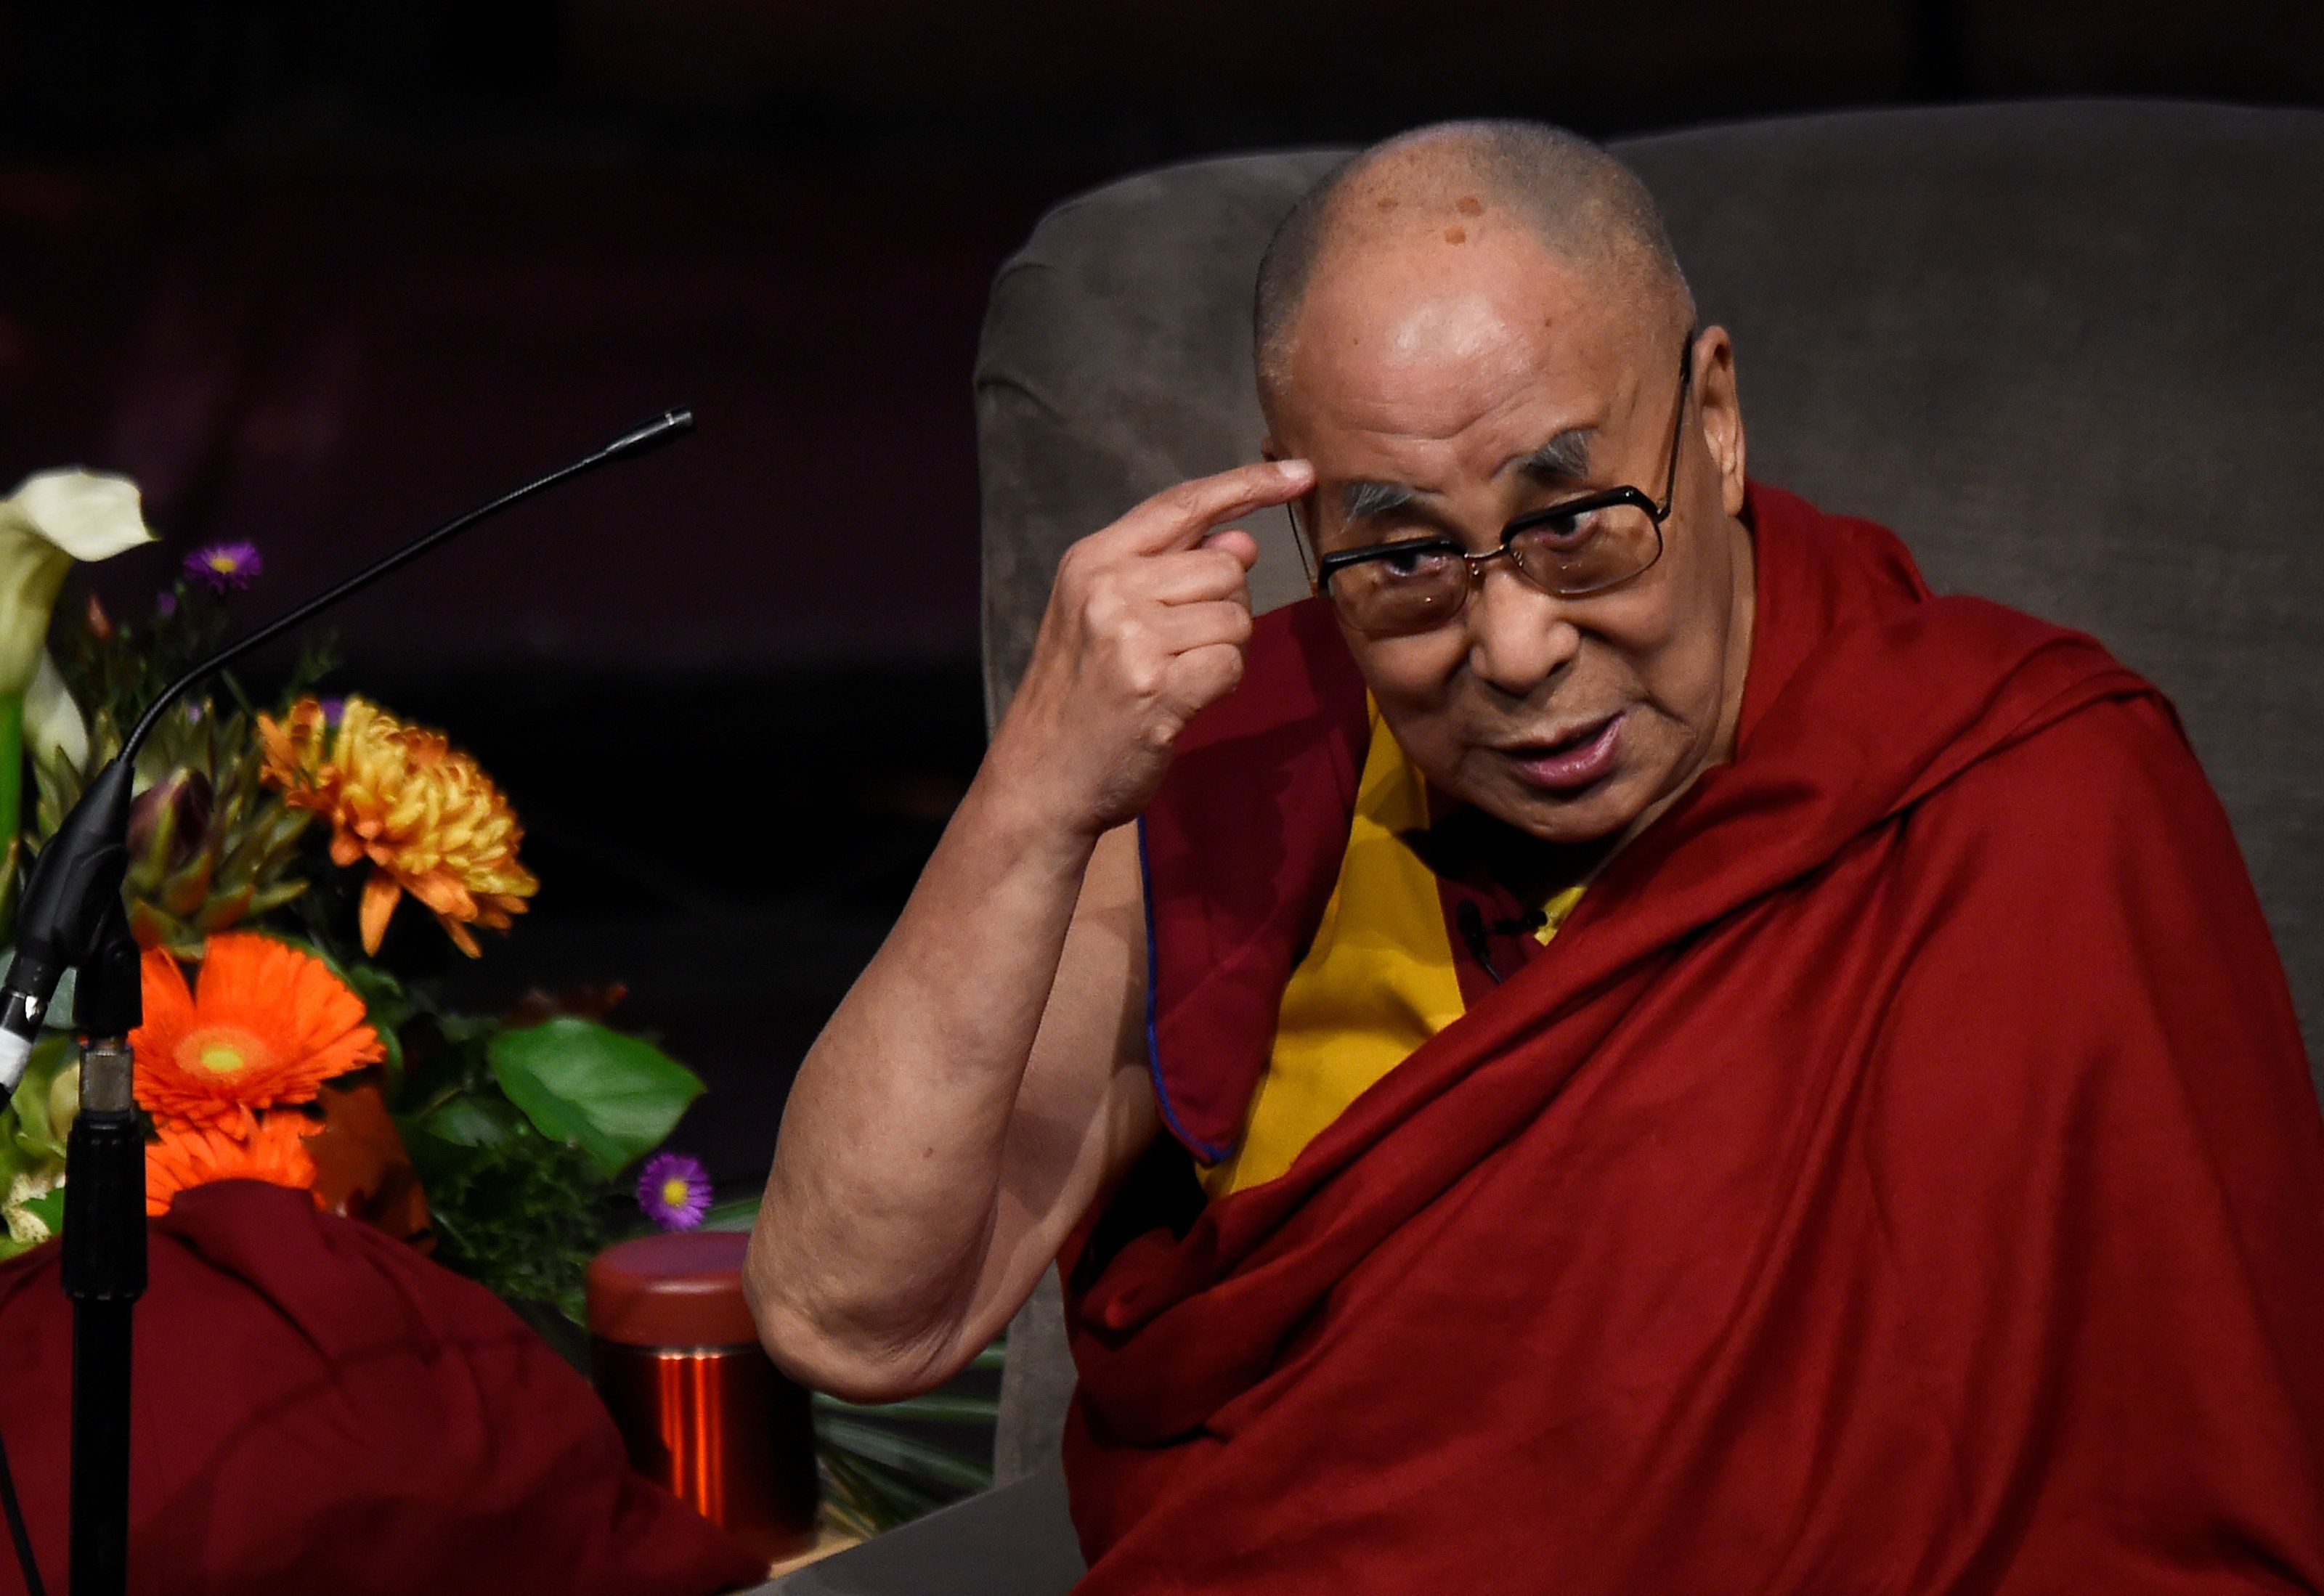 Tibetan spiritual leader the Dalai Lama gestures as he speaks at an event in Londonderry, Northern Ireland, September 10, 201